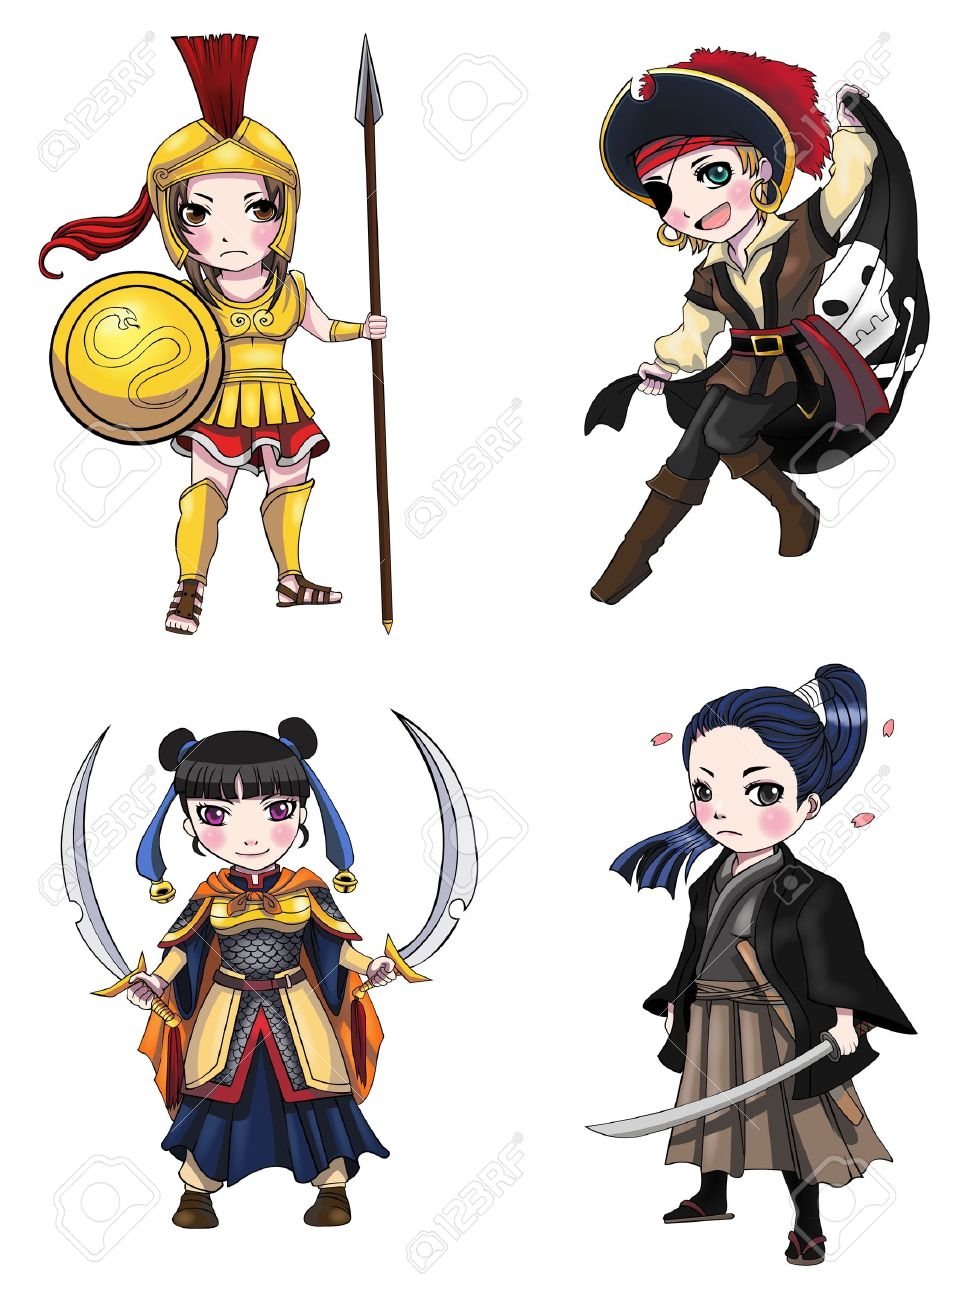 Woman Warrior clipart Warrior Download drawings #7 Warrior